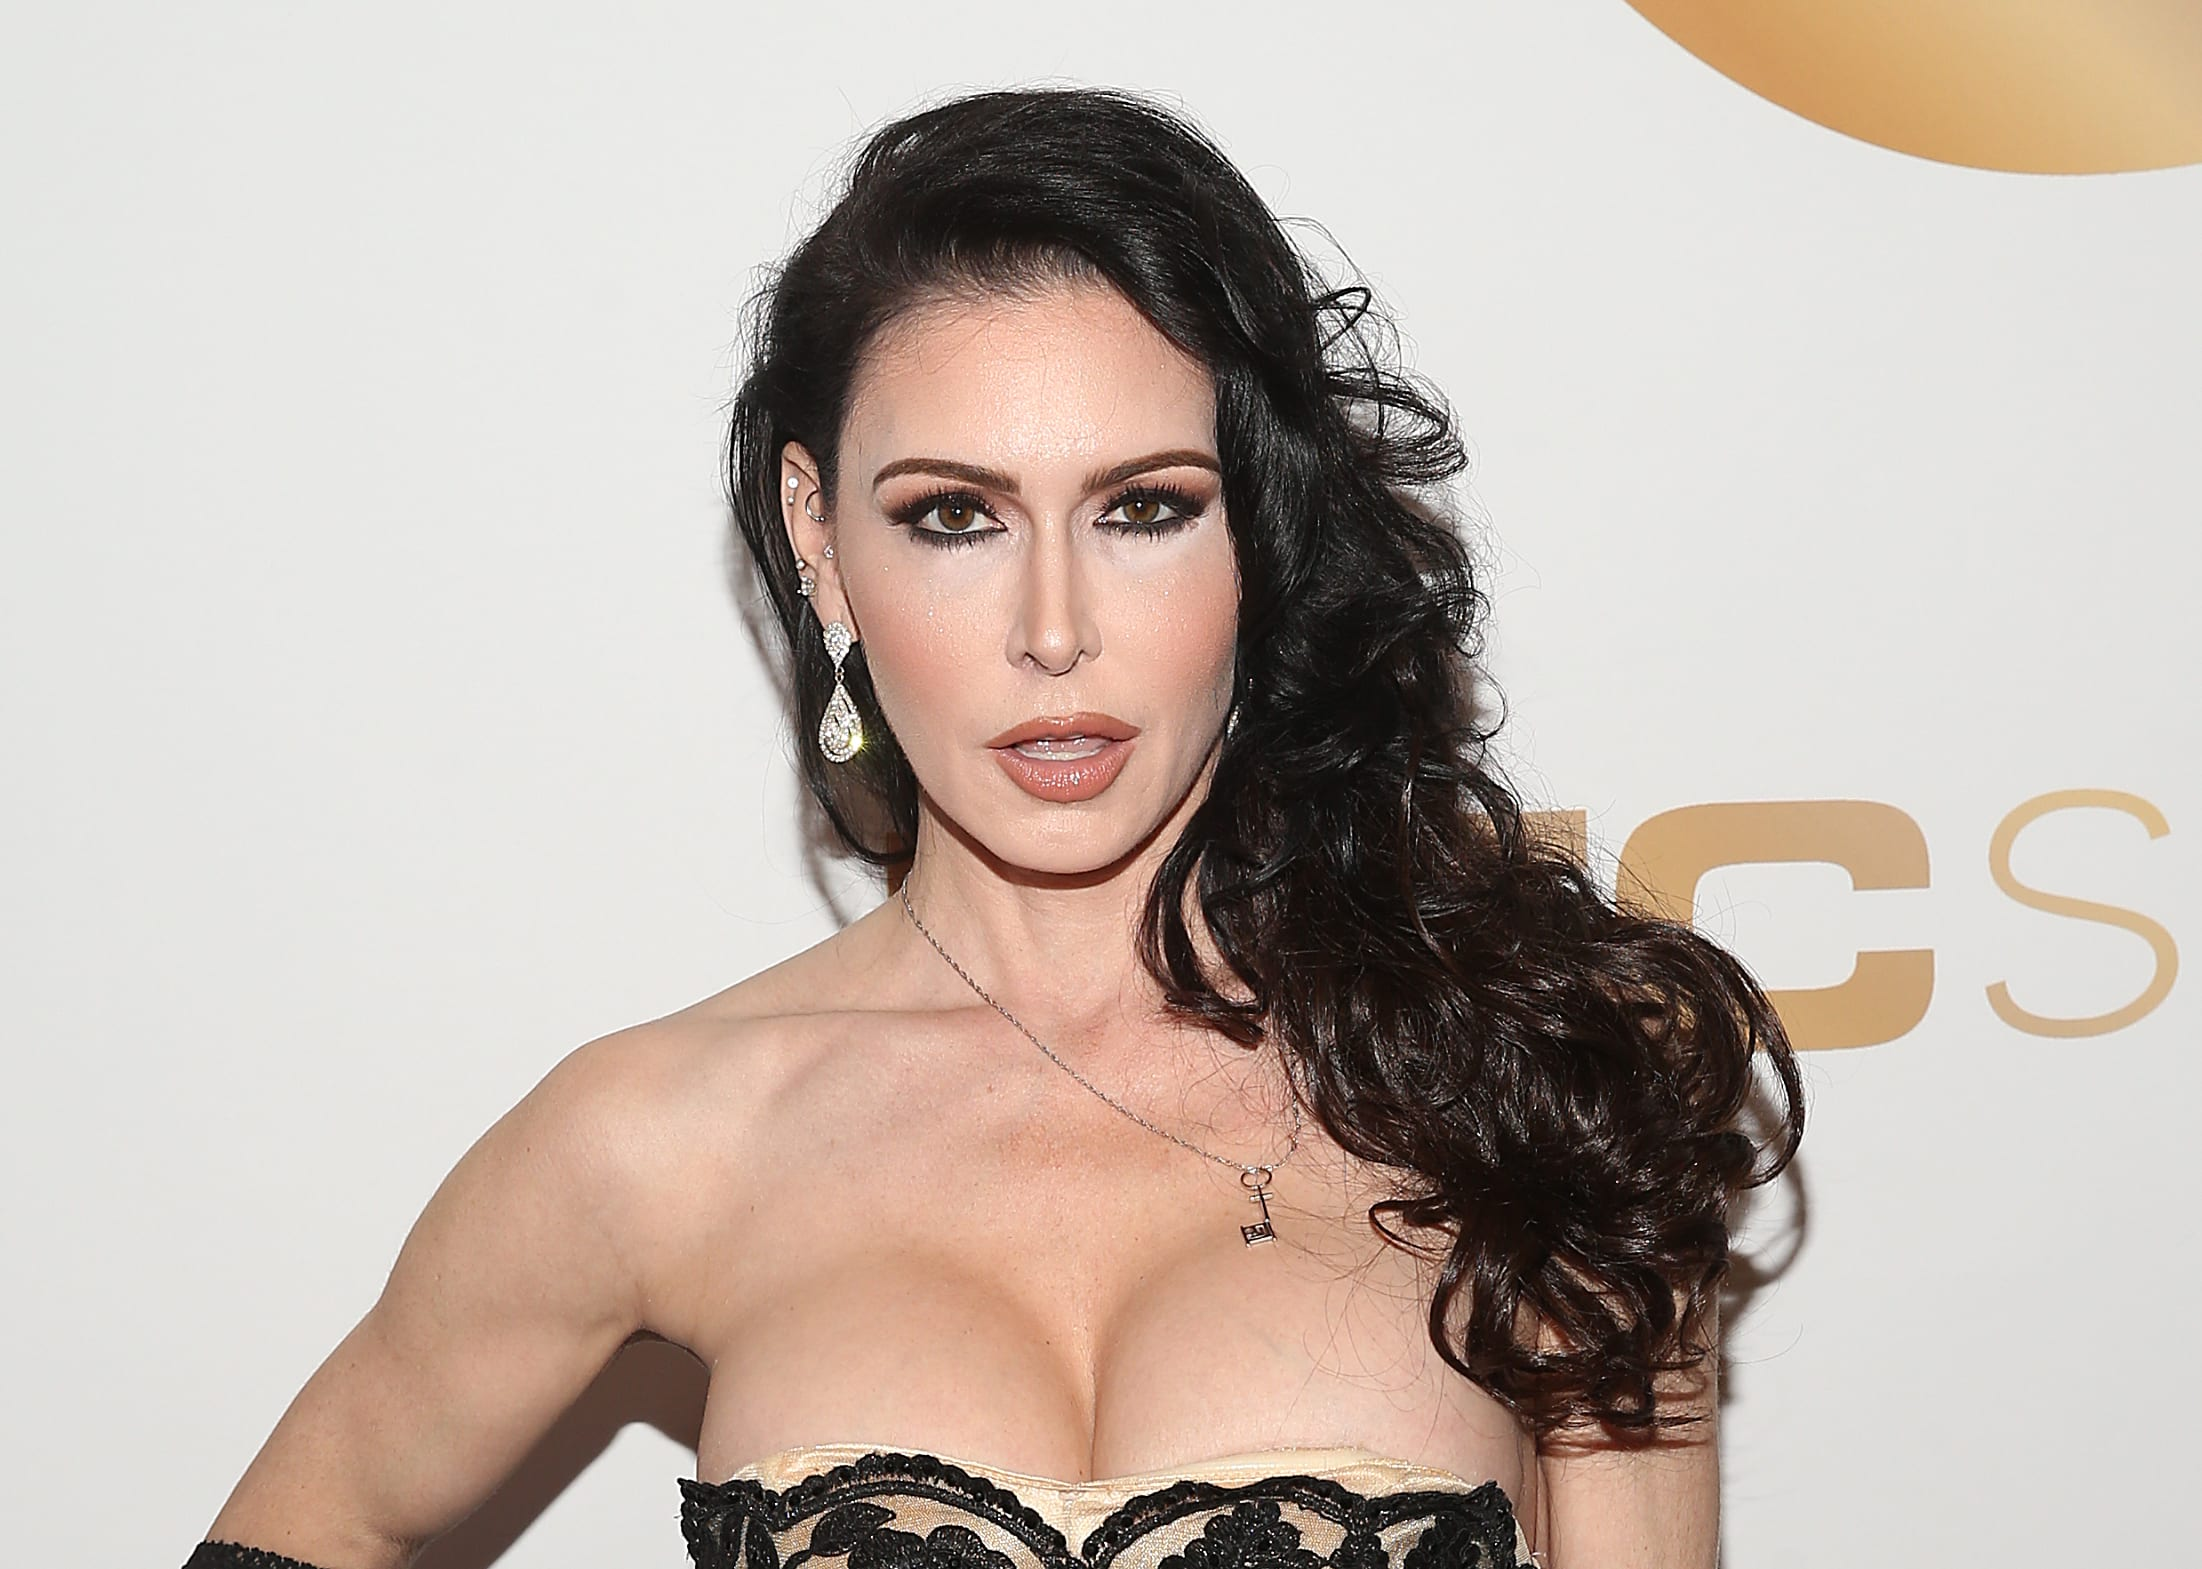 Jessica Jaymes Galleries jessica jaymes dies; legendary adult film star was 43 - the